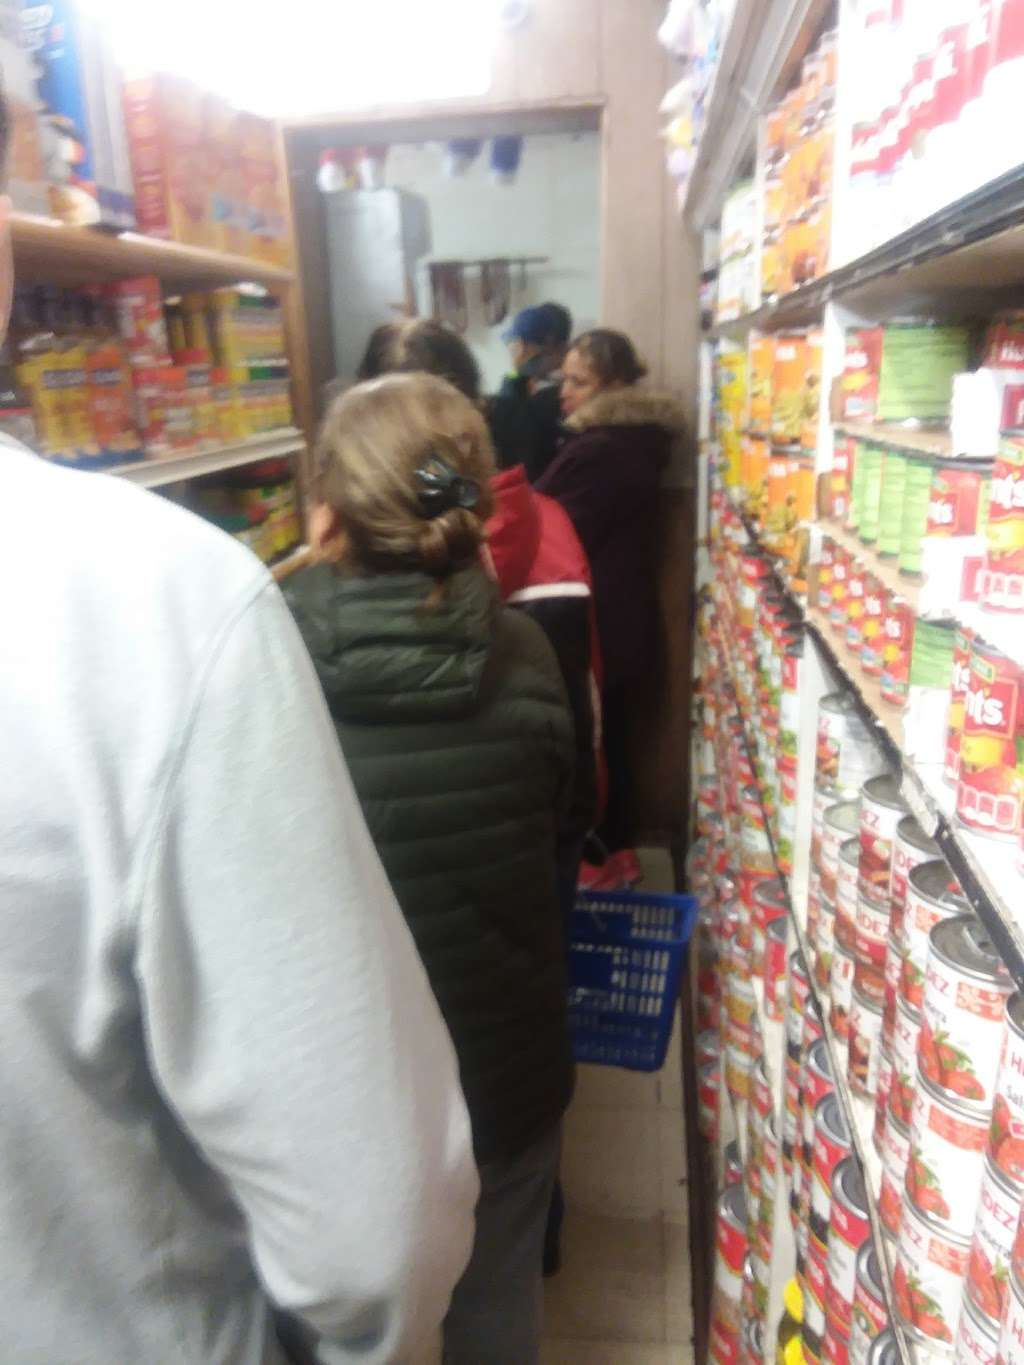 La Flor Grocery Store - store  | Photo 5 of 9 | Address: 10500 S Ave M, Chicago, IL 60617, USA | Phone: (773) 731-9390